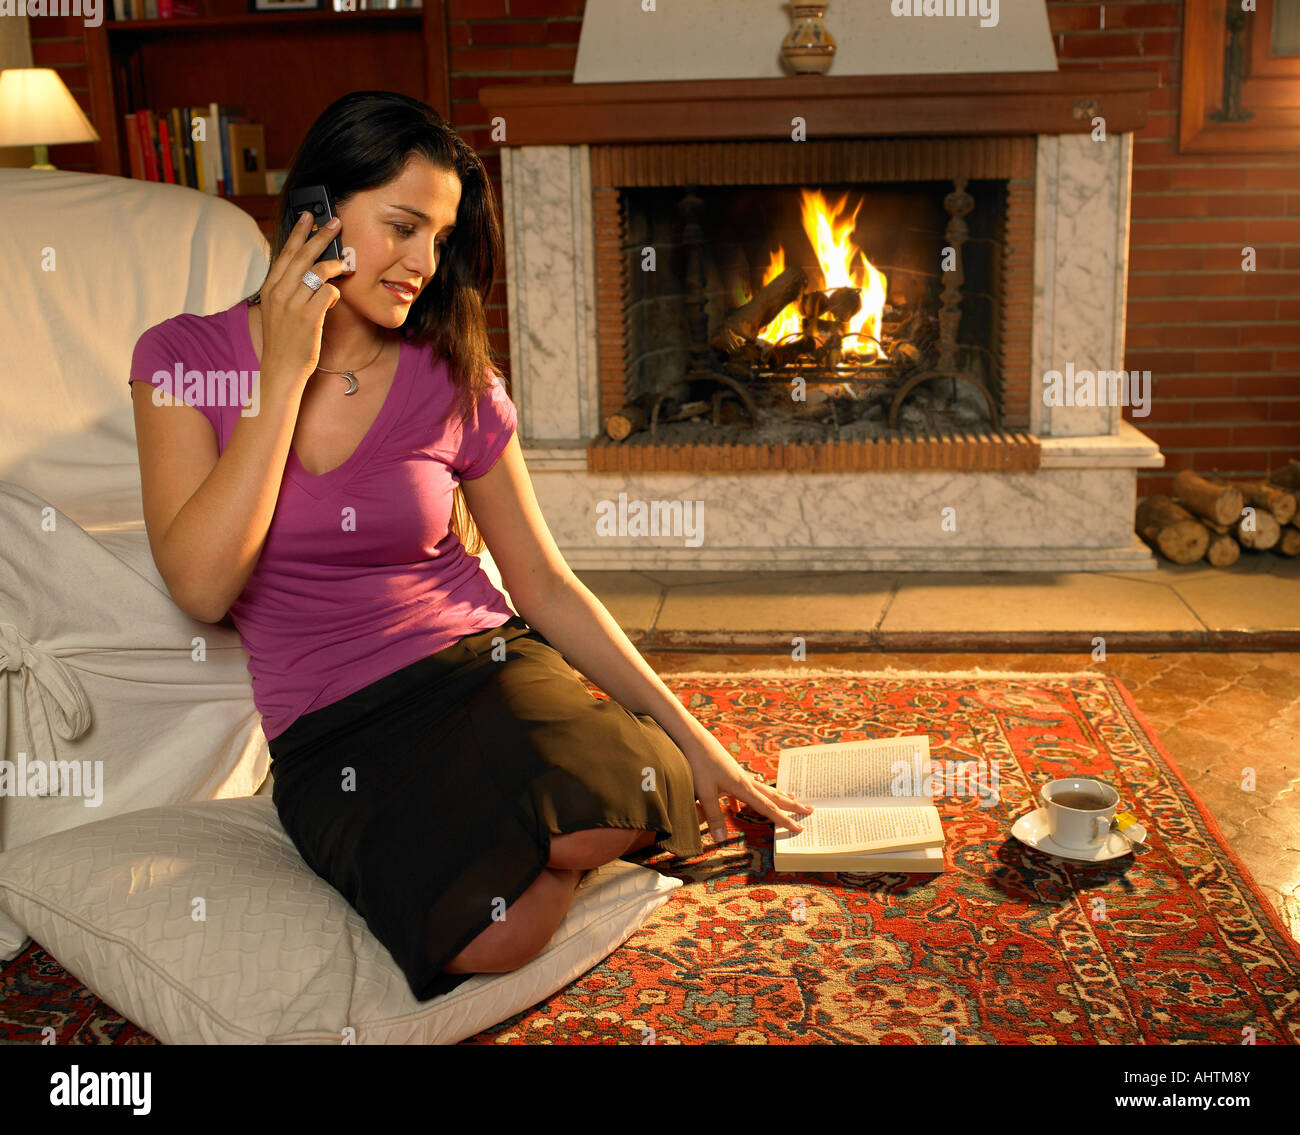 Young Woman Sitting On Rug In Front Of Fire Using Mobile